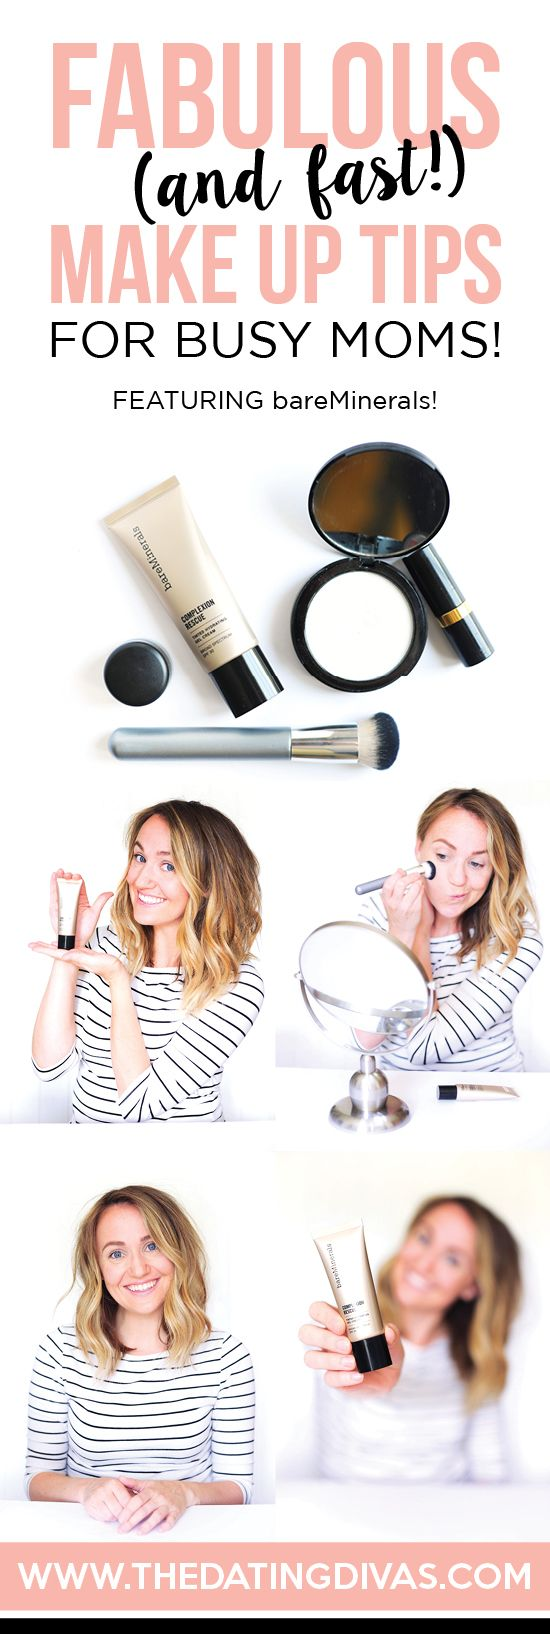 Quick makeup tips for Moms on-the-go with bareMinerals! www.TheDatingDivas.com @bareMinerals #BareMinerals #MorningRescue